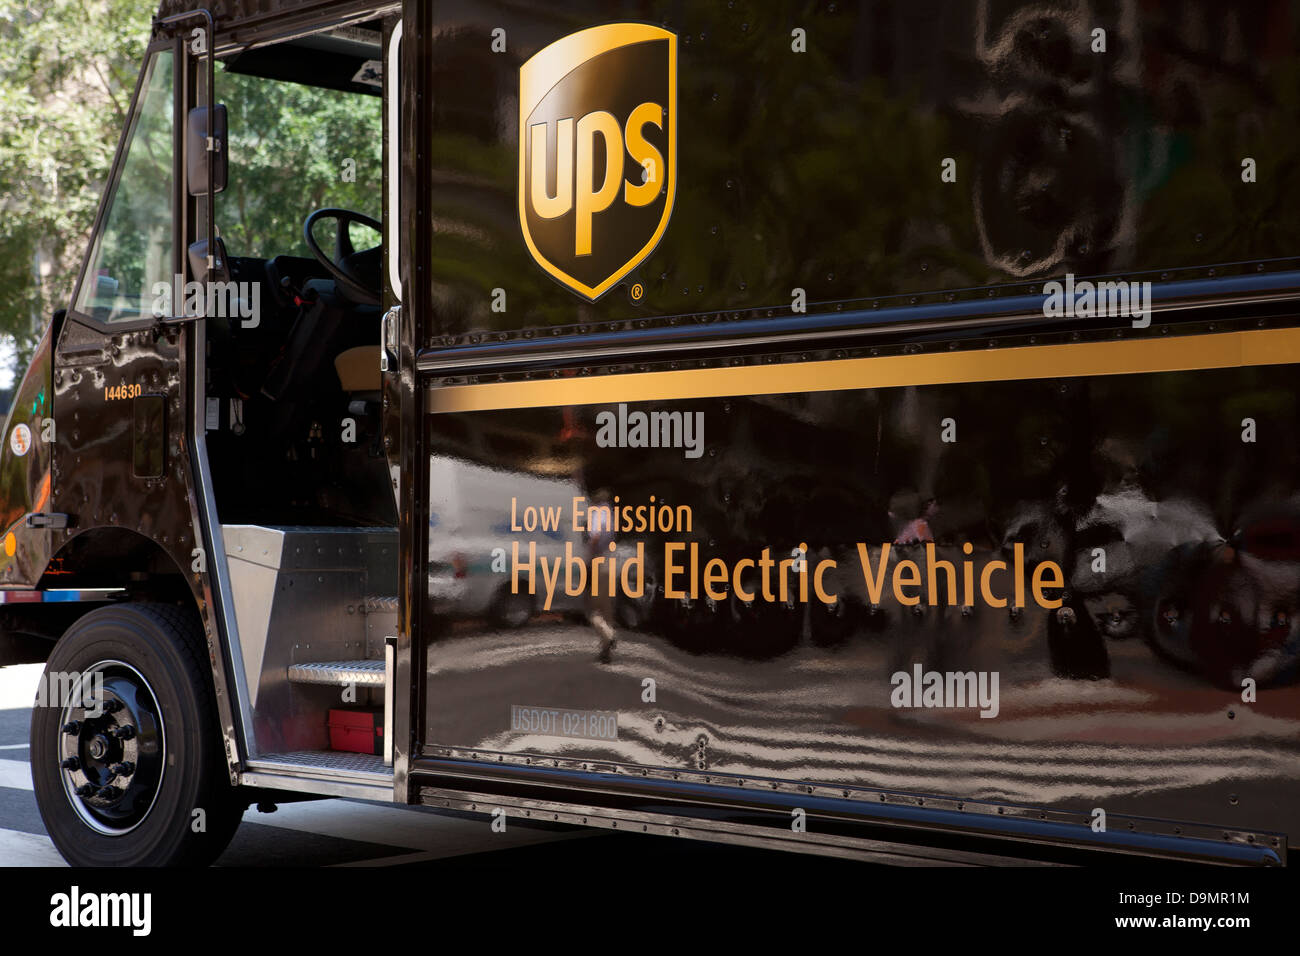 UPS hybrid electric delivery truck - Stock Image